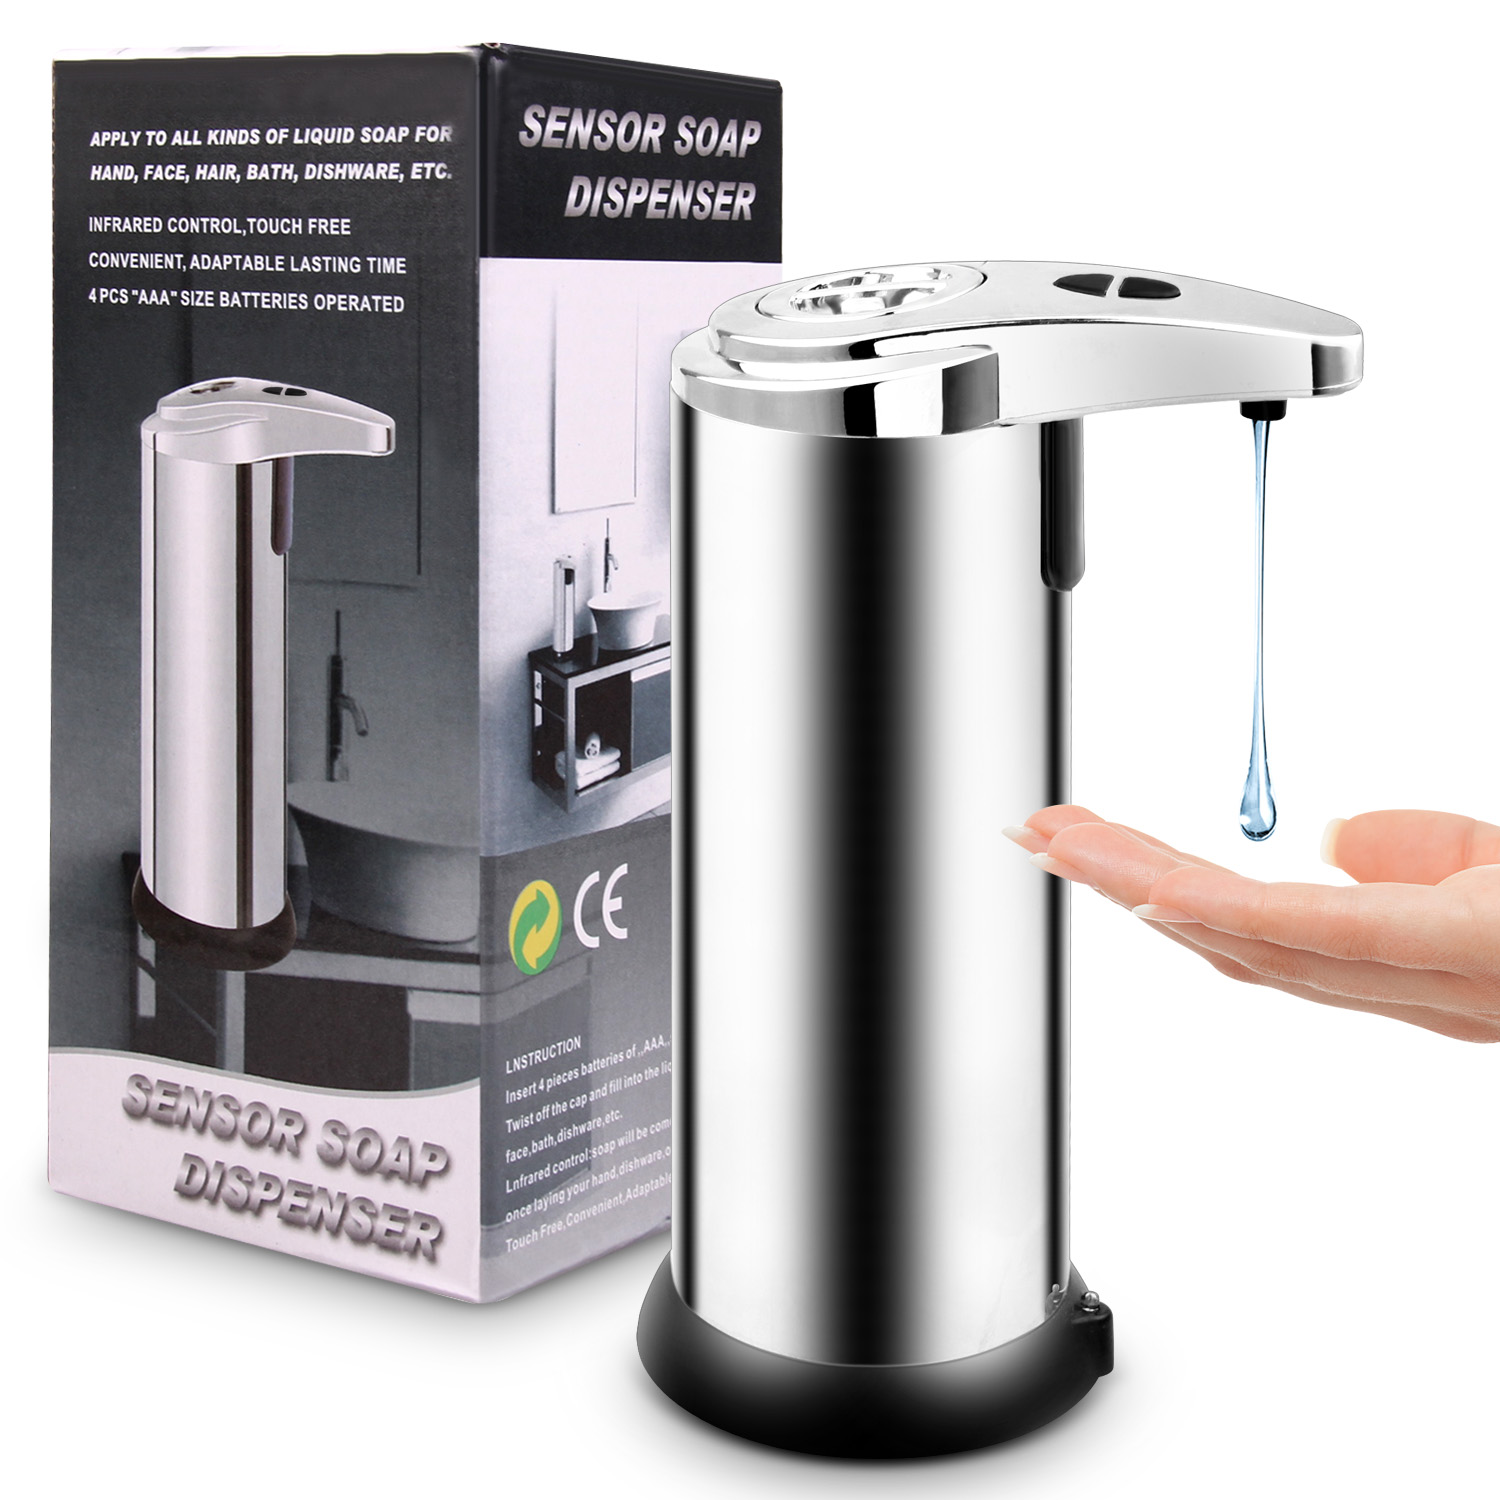 Automatic Soap Dispenser Pump Infrared Motion Sensor Touchless Hands-Free Automatic Liquid Soap Washer Bottle For Bathroom Home